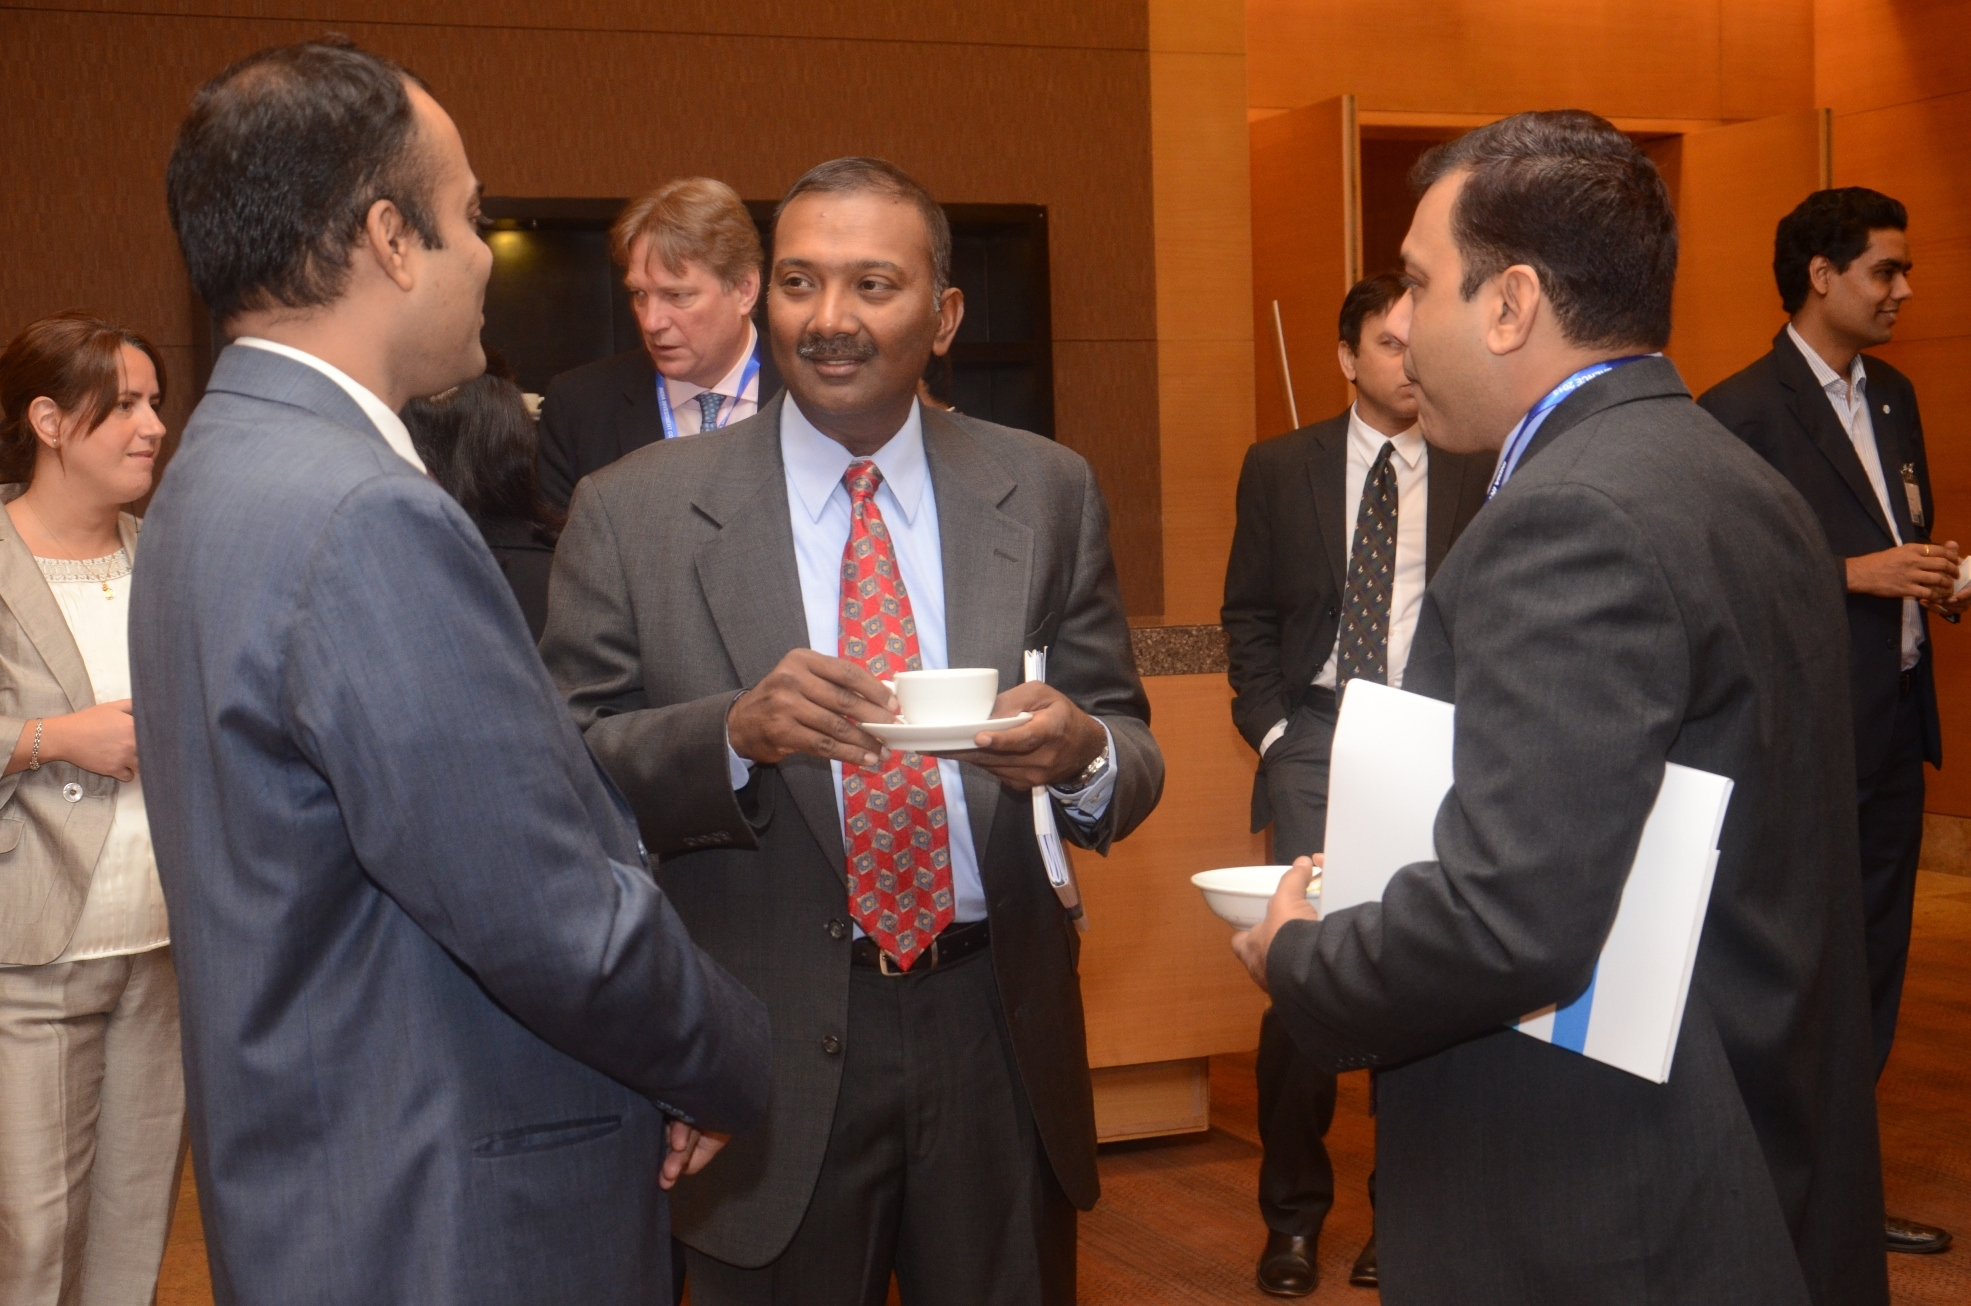 investment conference 2013 n association of paul smith cfa managing director apac right participants